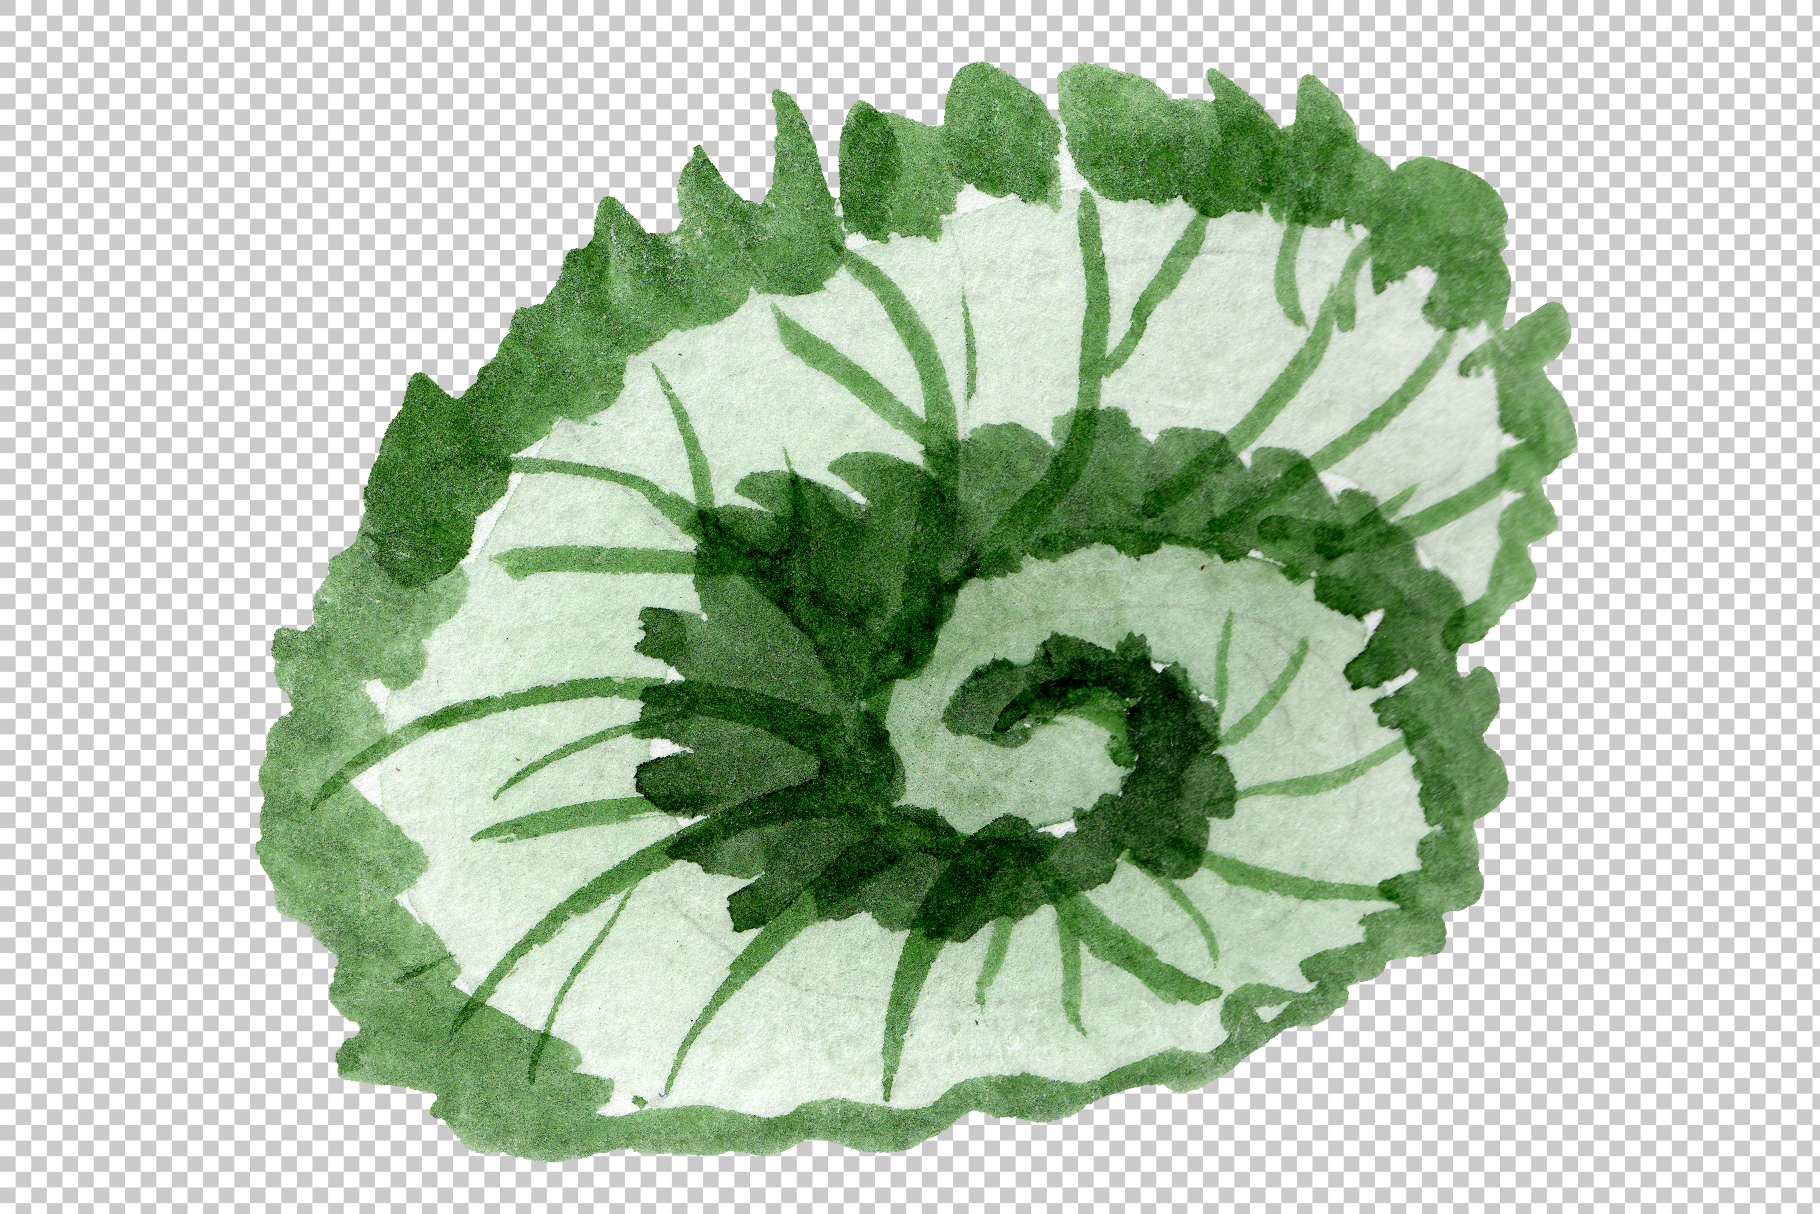 Begonia leaves Watercolor png example image 6